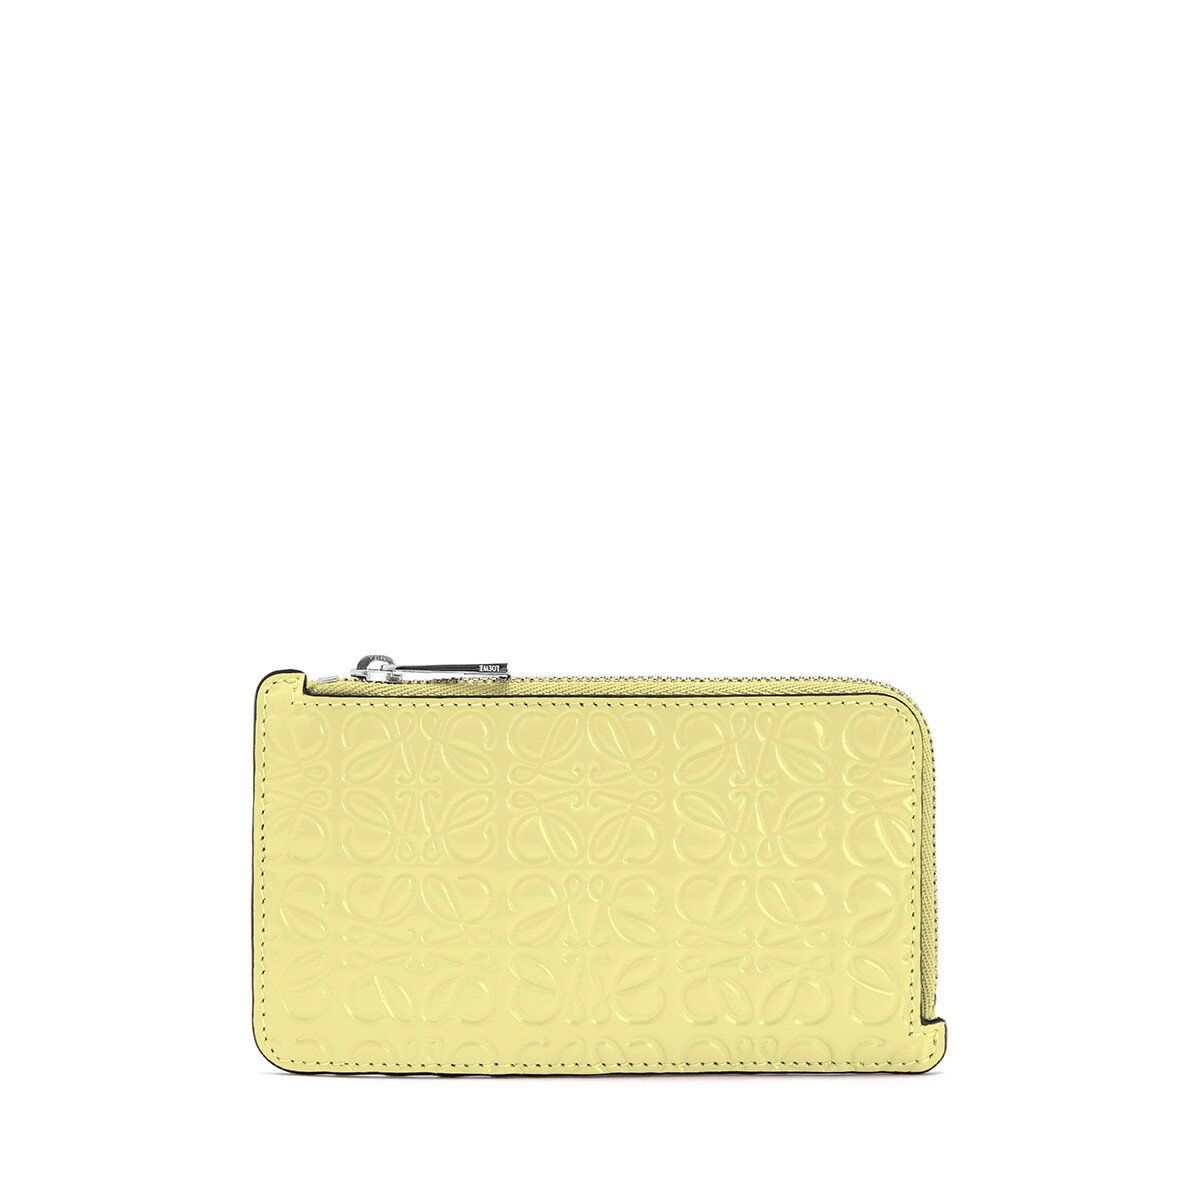 LOEWE Coin Cardholder 黄色 front